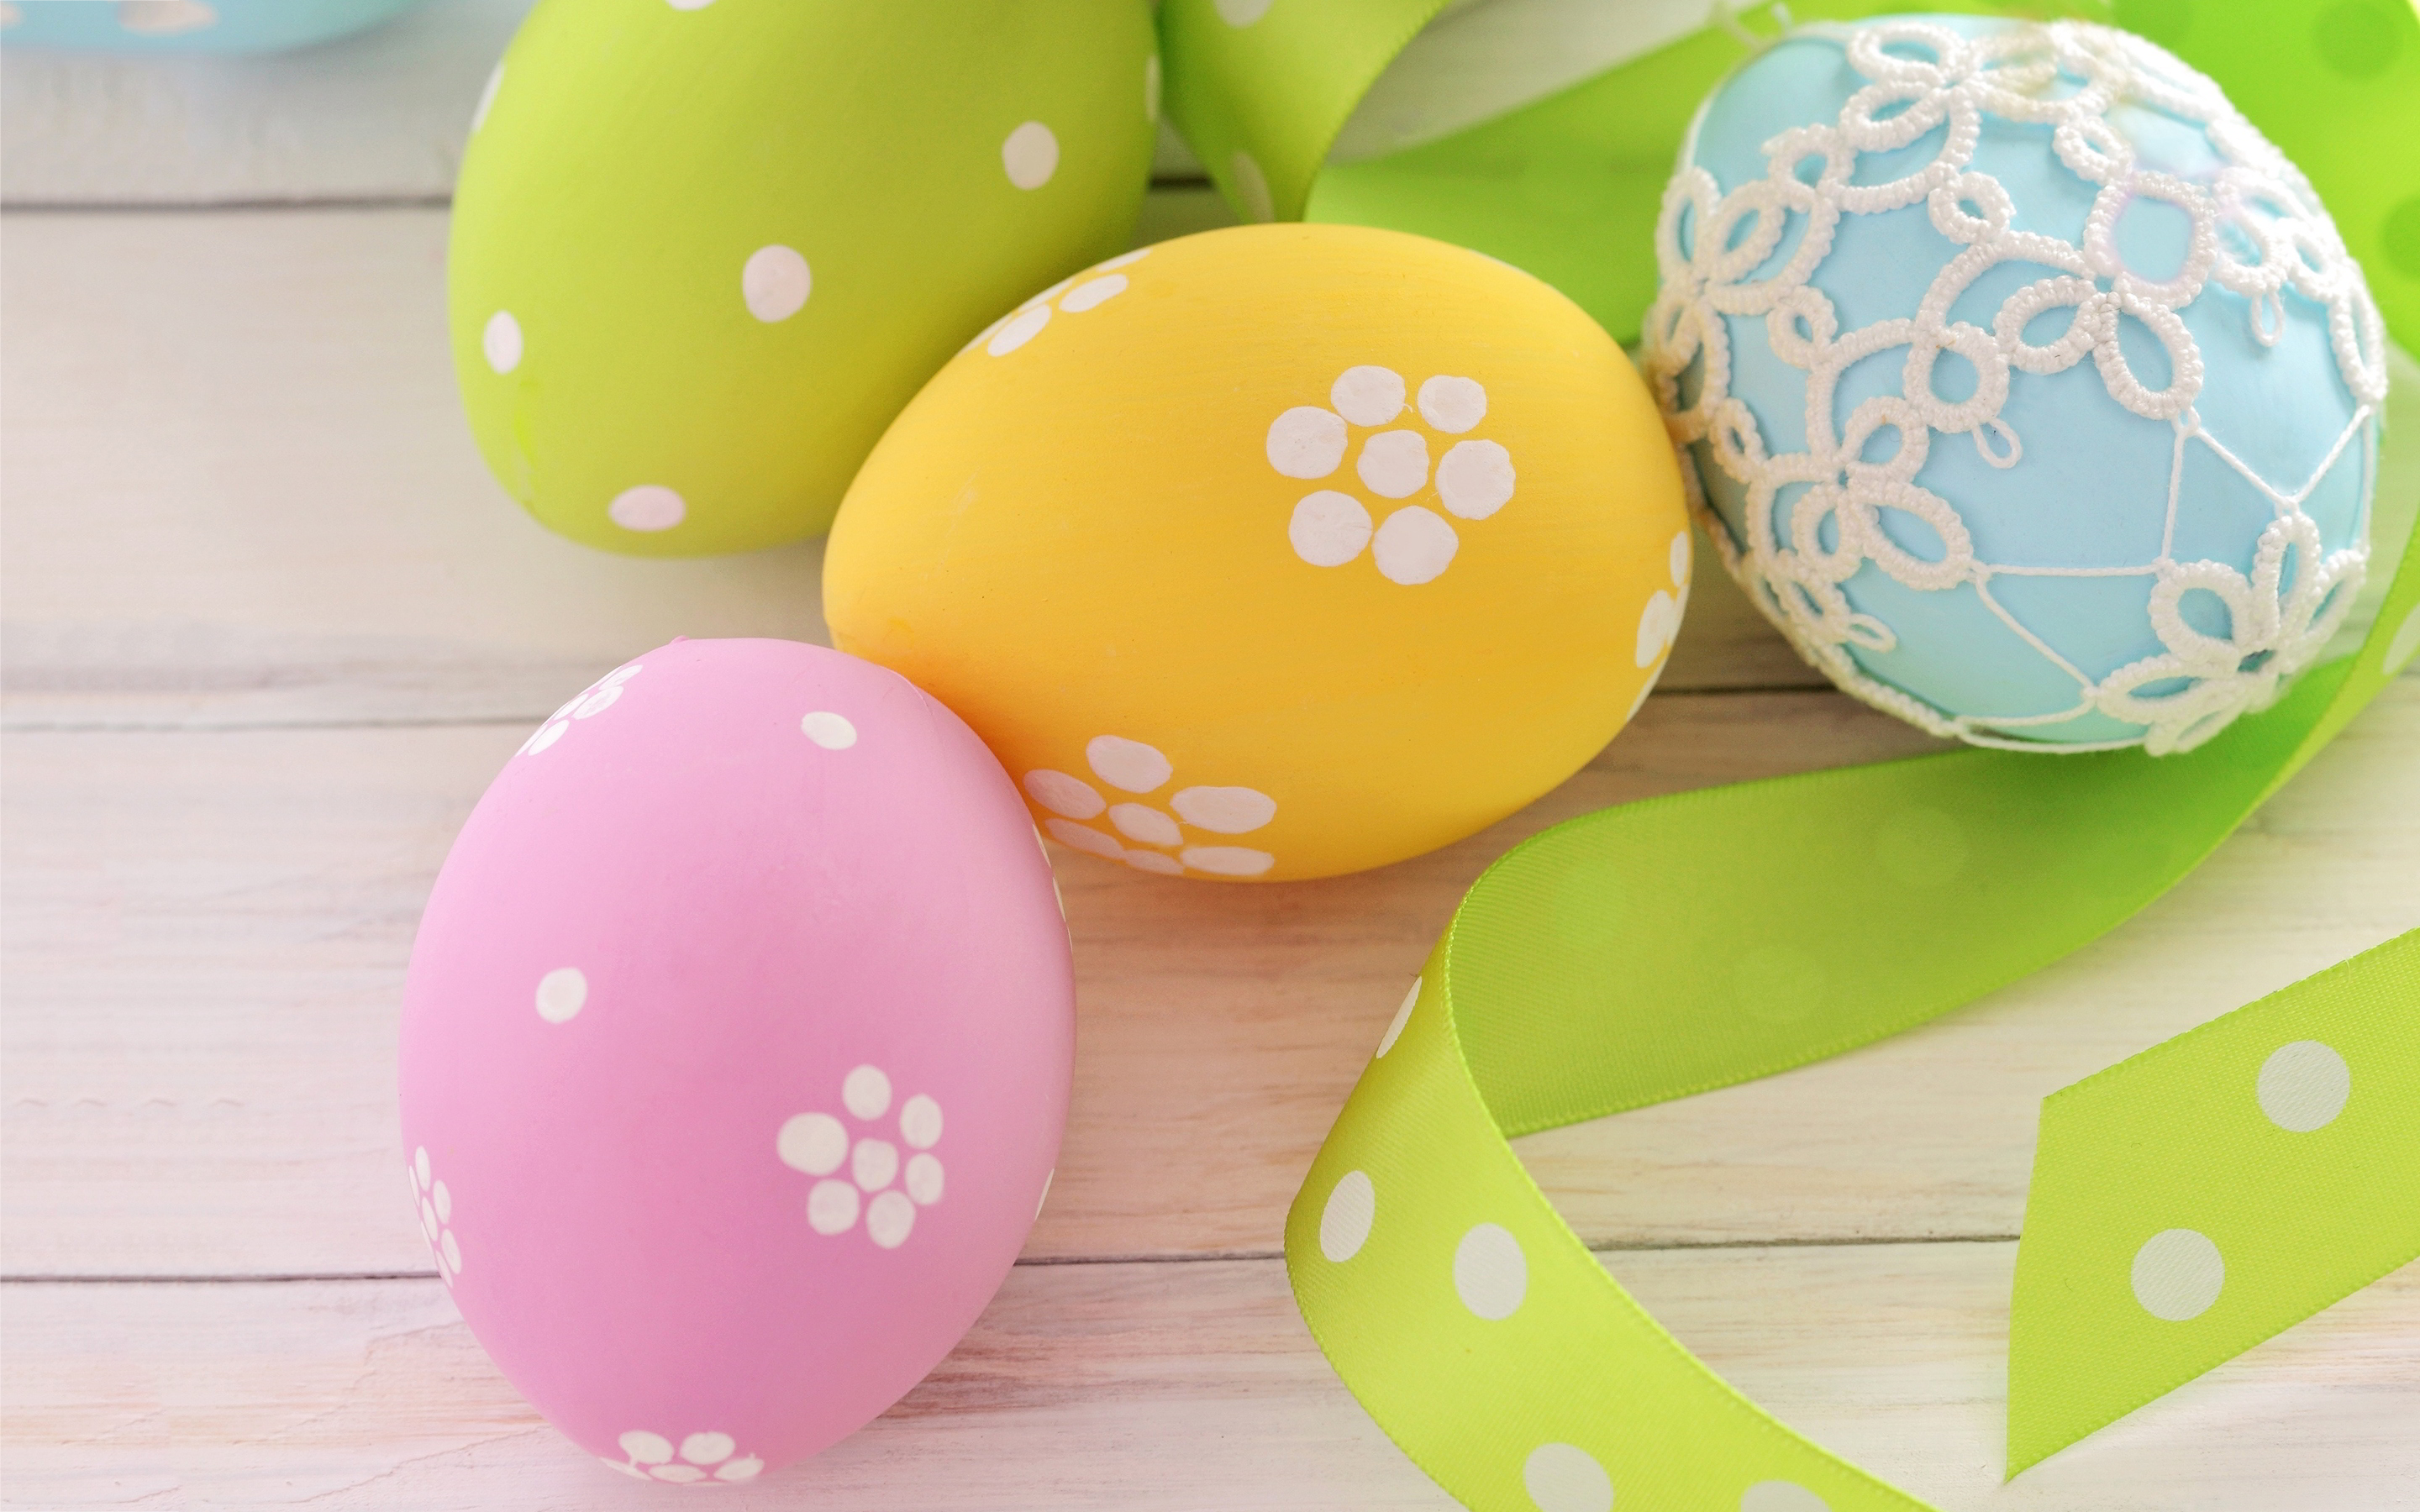 Easter Eggs HD Celebrations 4k Wallpapers Images Backgrounds